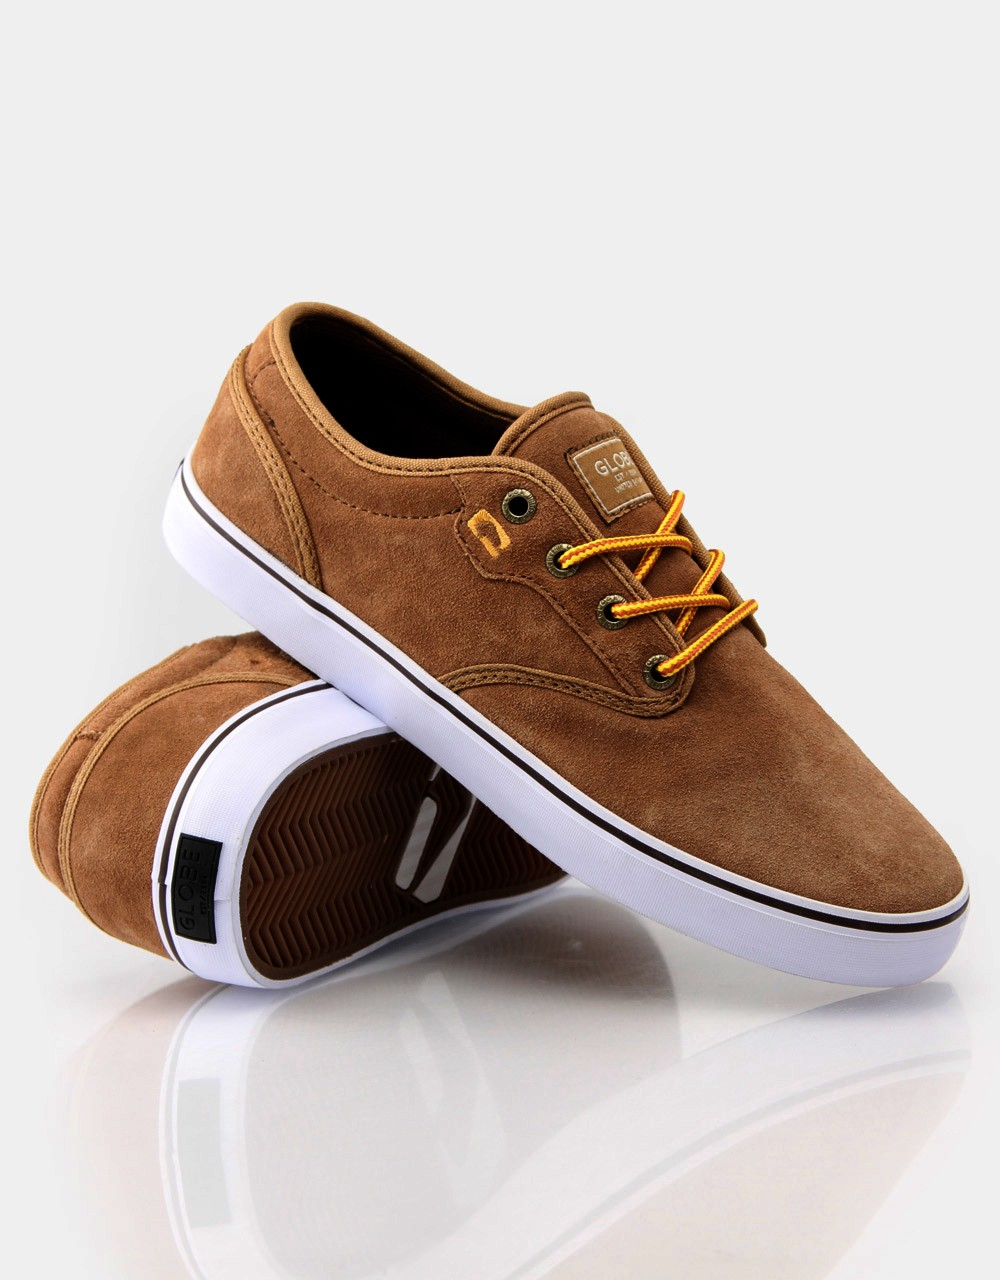 Globe Shoes Motley Golden Brown FREE POST New Skateboard Sneakers USA Size